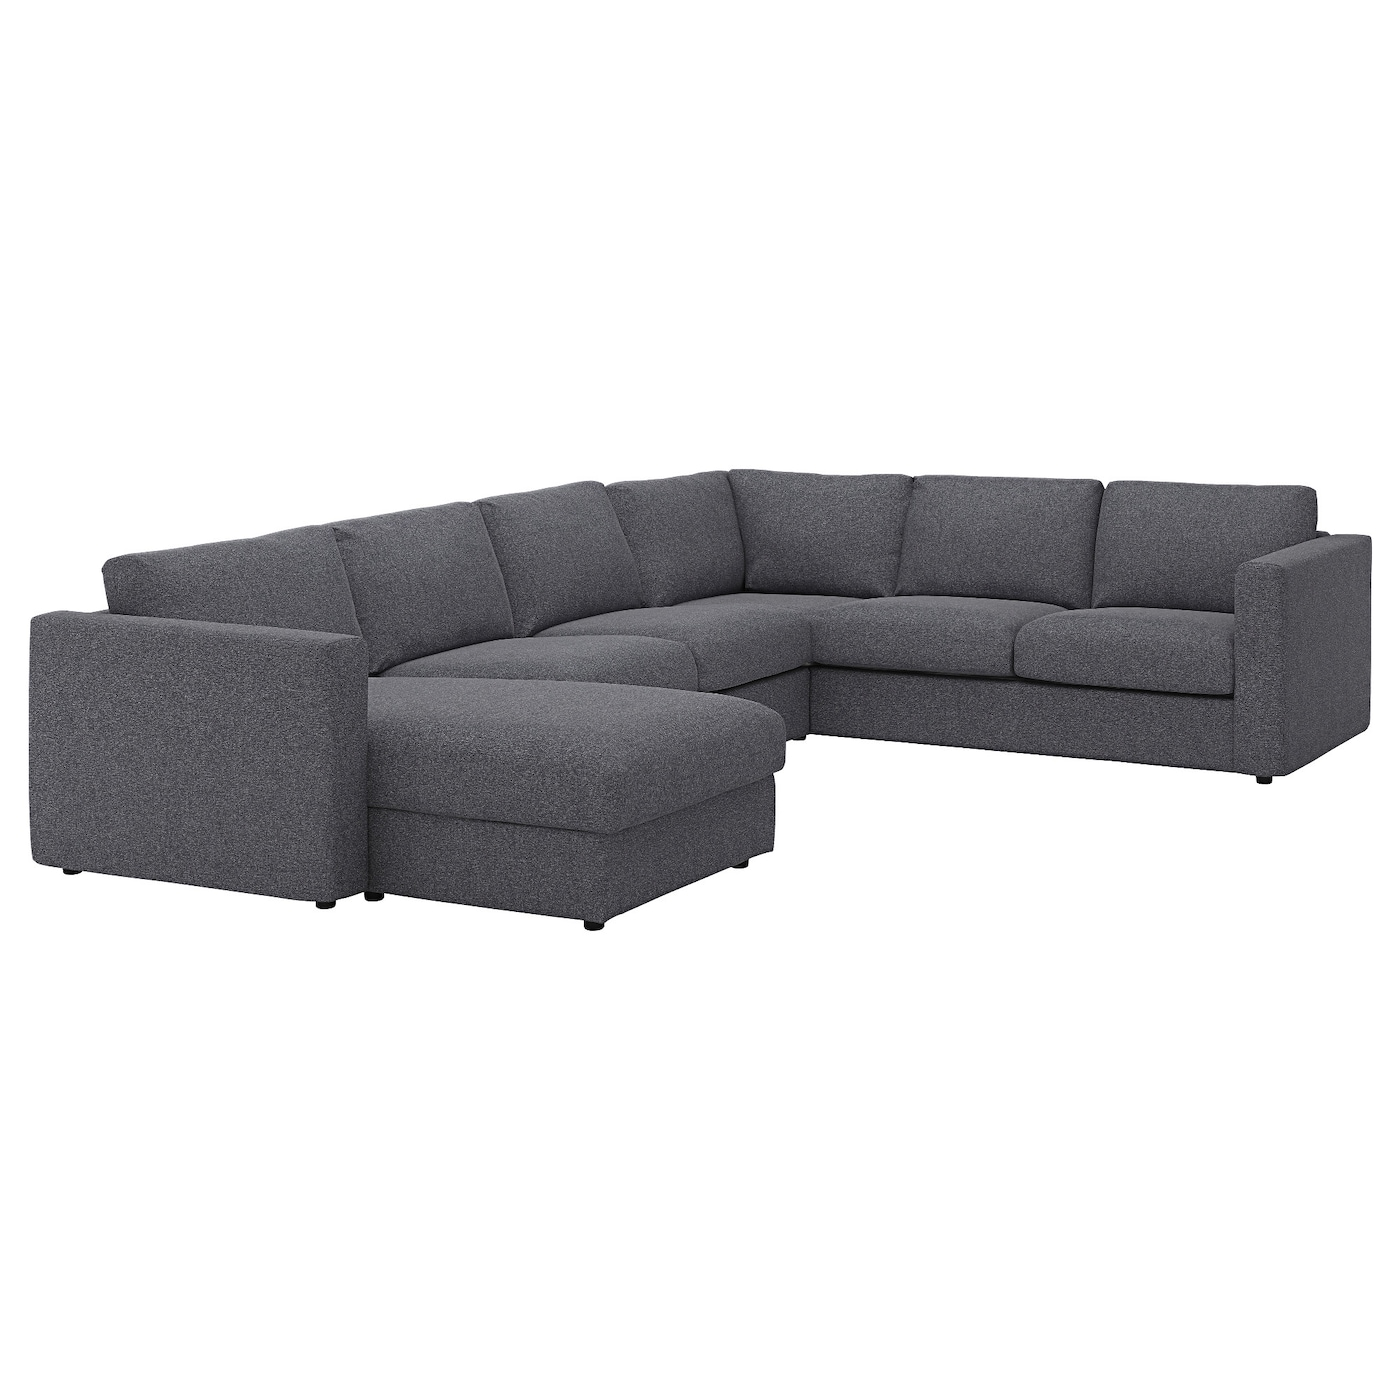 IKEA VIMLE Corner Sofa, 5 Seat 10 Year Guarantee. Read About The Terms